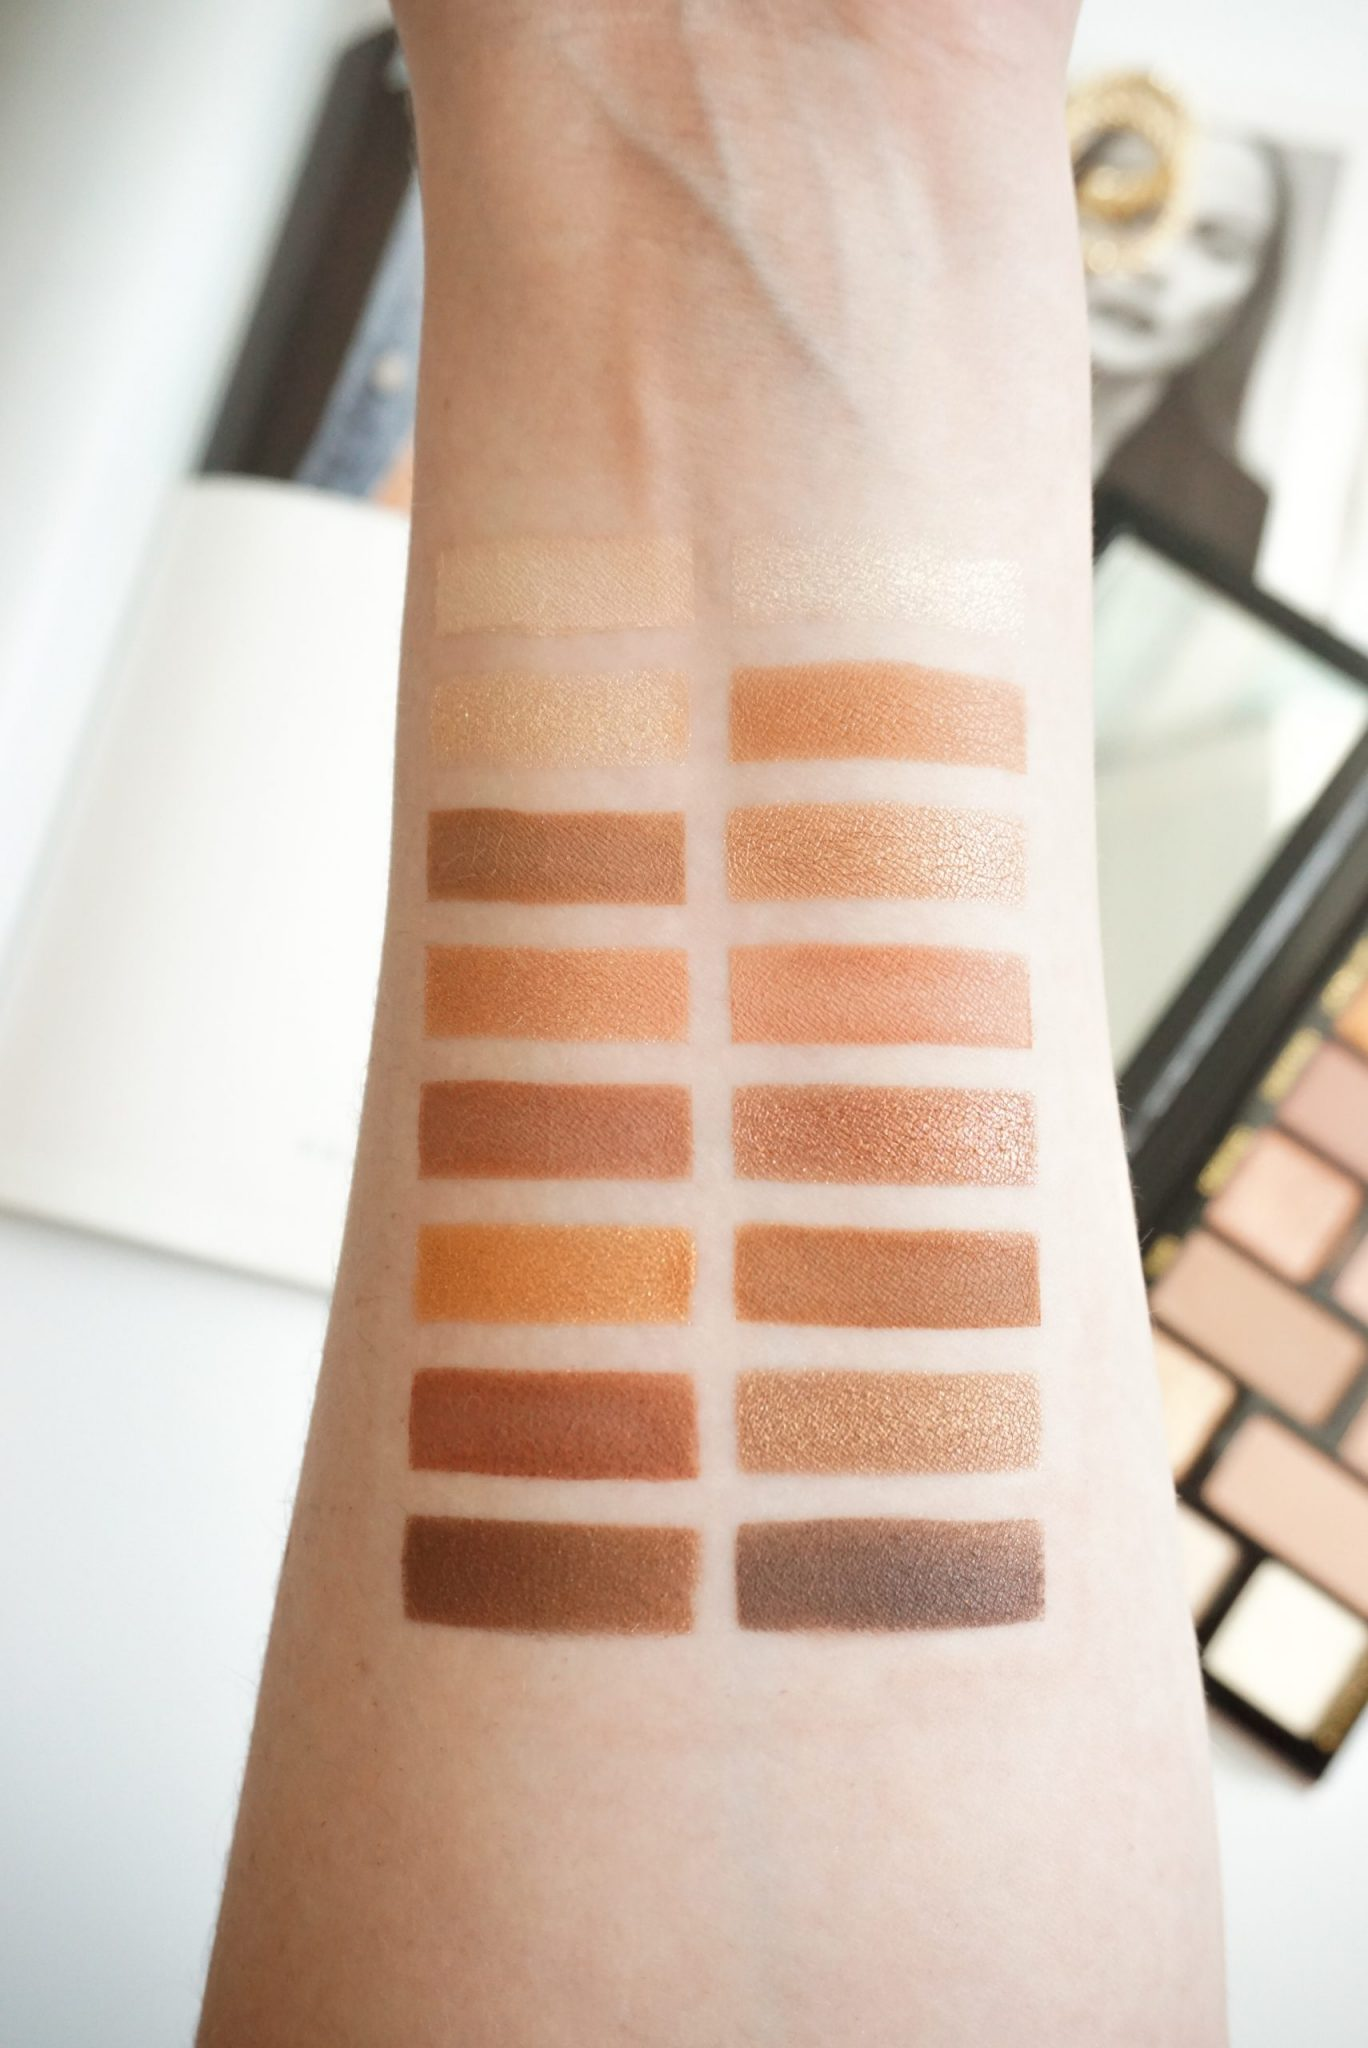 Too Faced Born This Way The Natural Nudes Eyeshadow Palette Review ⋆ Beautymone